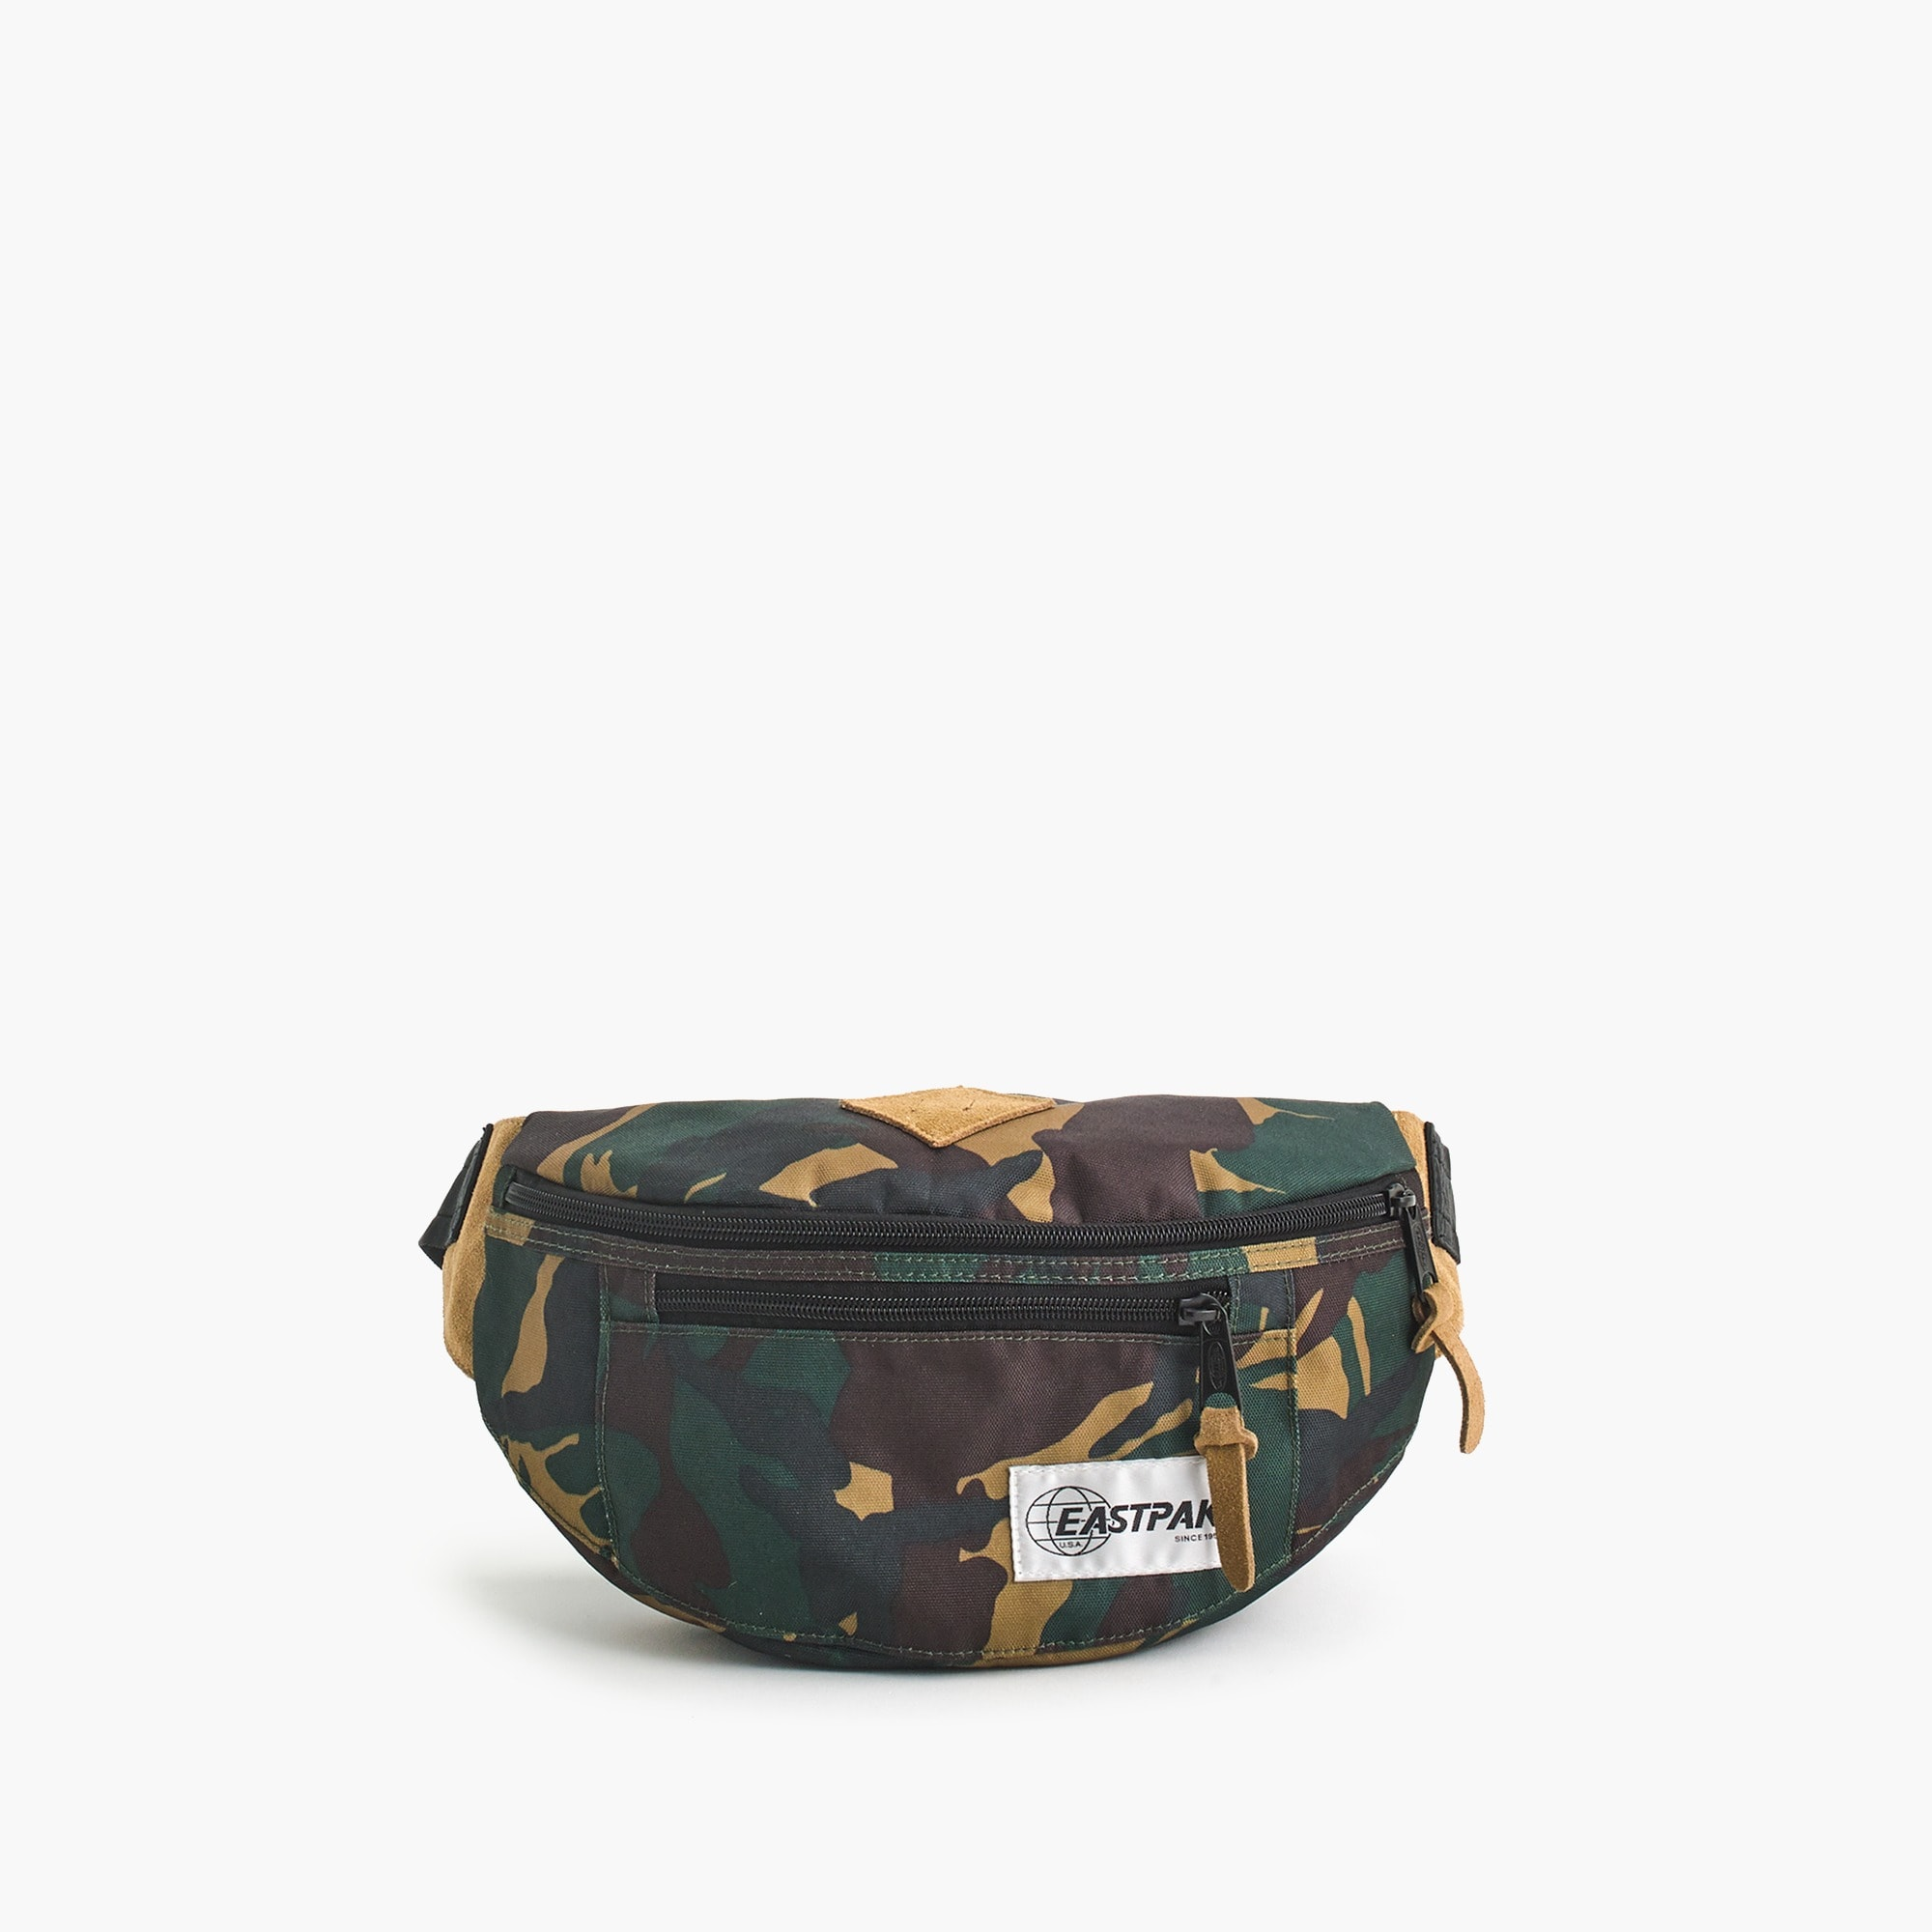 Eastpak® for J.Crew waist pack men j.crew in good company c